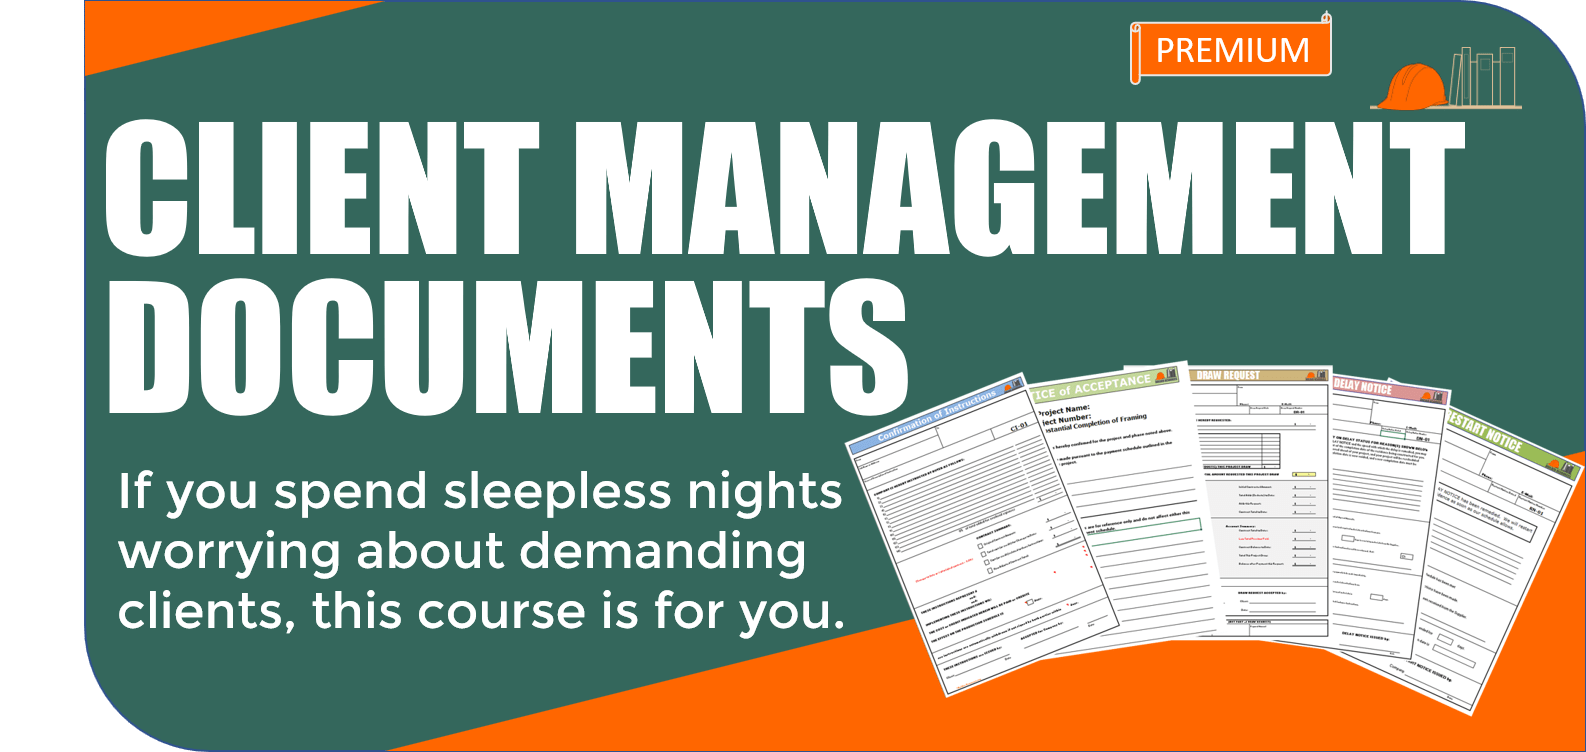 Client Management Documents